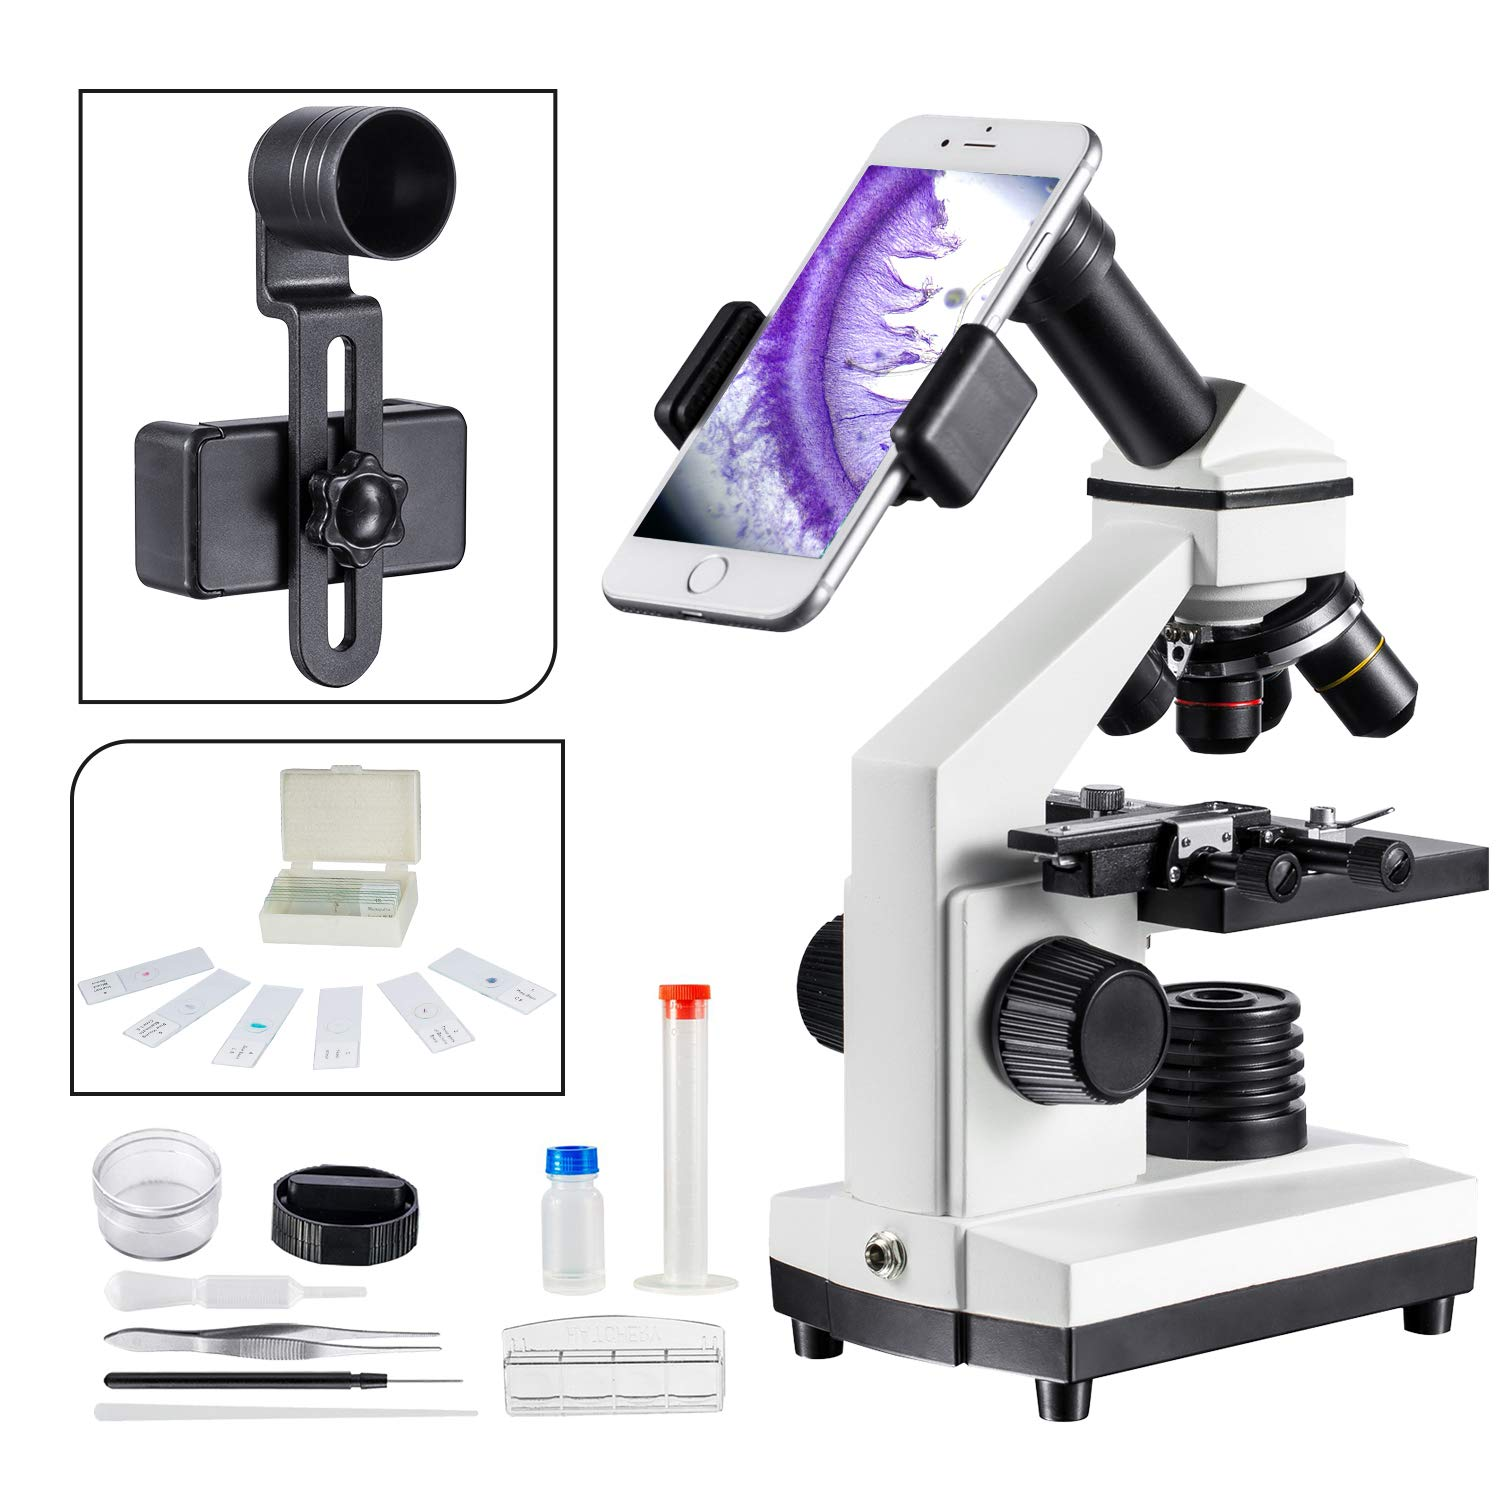 1000x Compound Microscope for Students with Prepared Slides Kit Suitable for School Teaching, Biological Research and Homeschool Learning Nature MAXLAPTER by MAXLAPTER